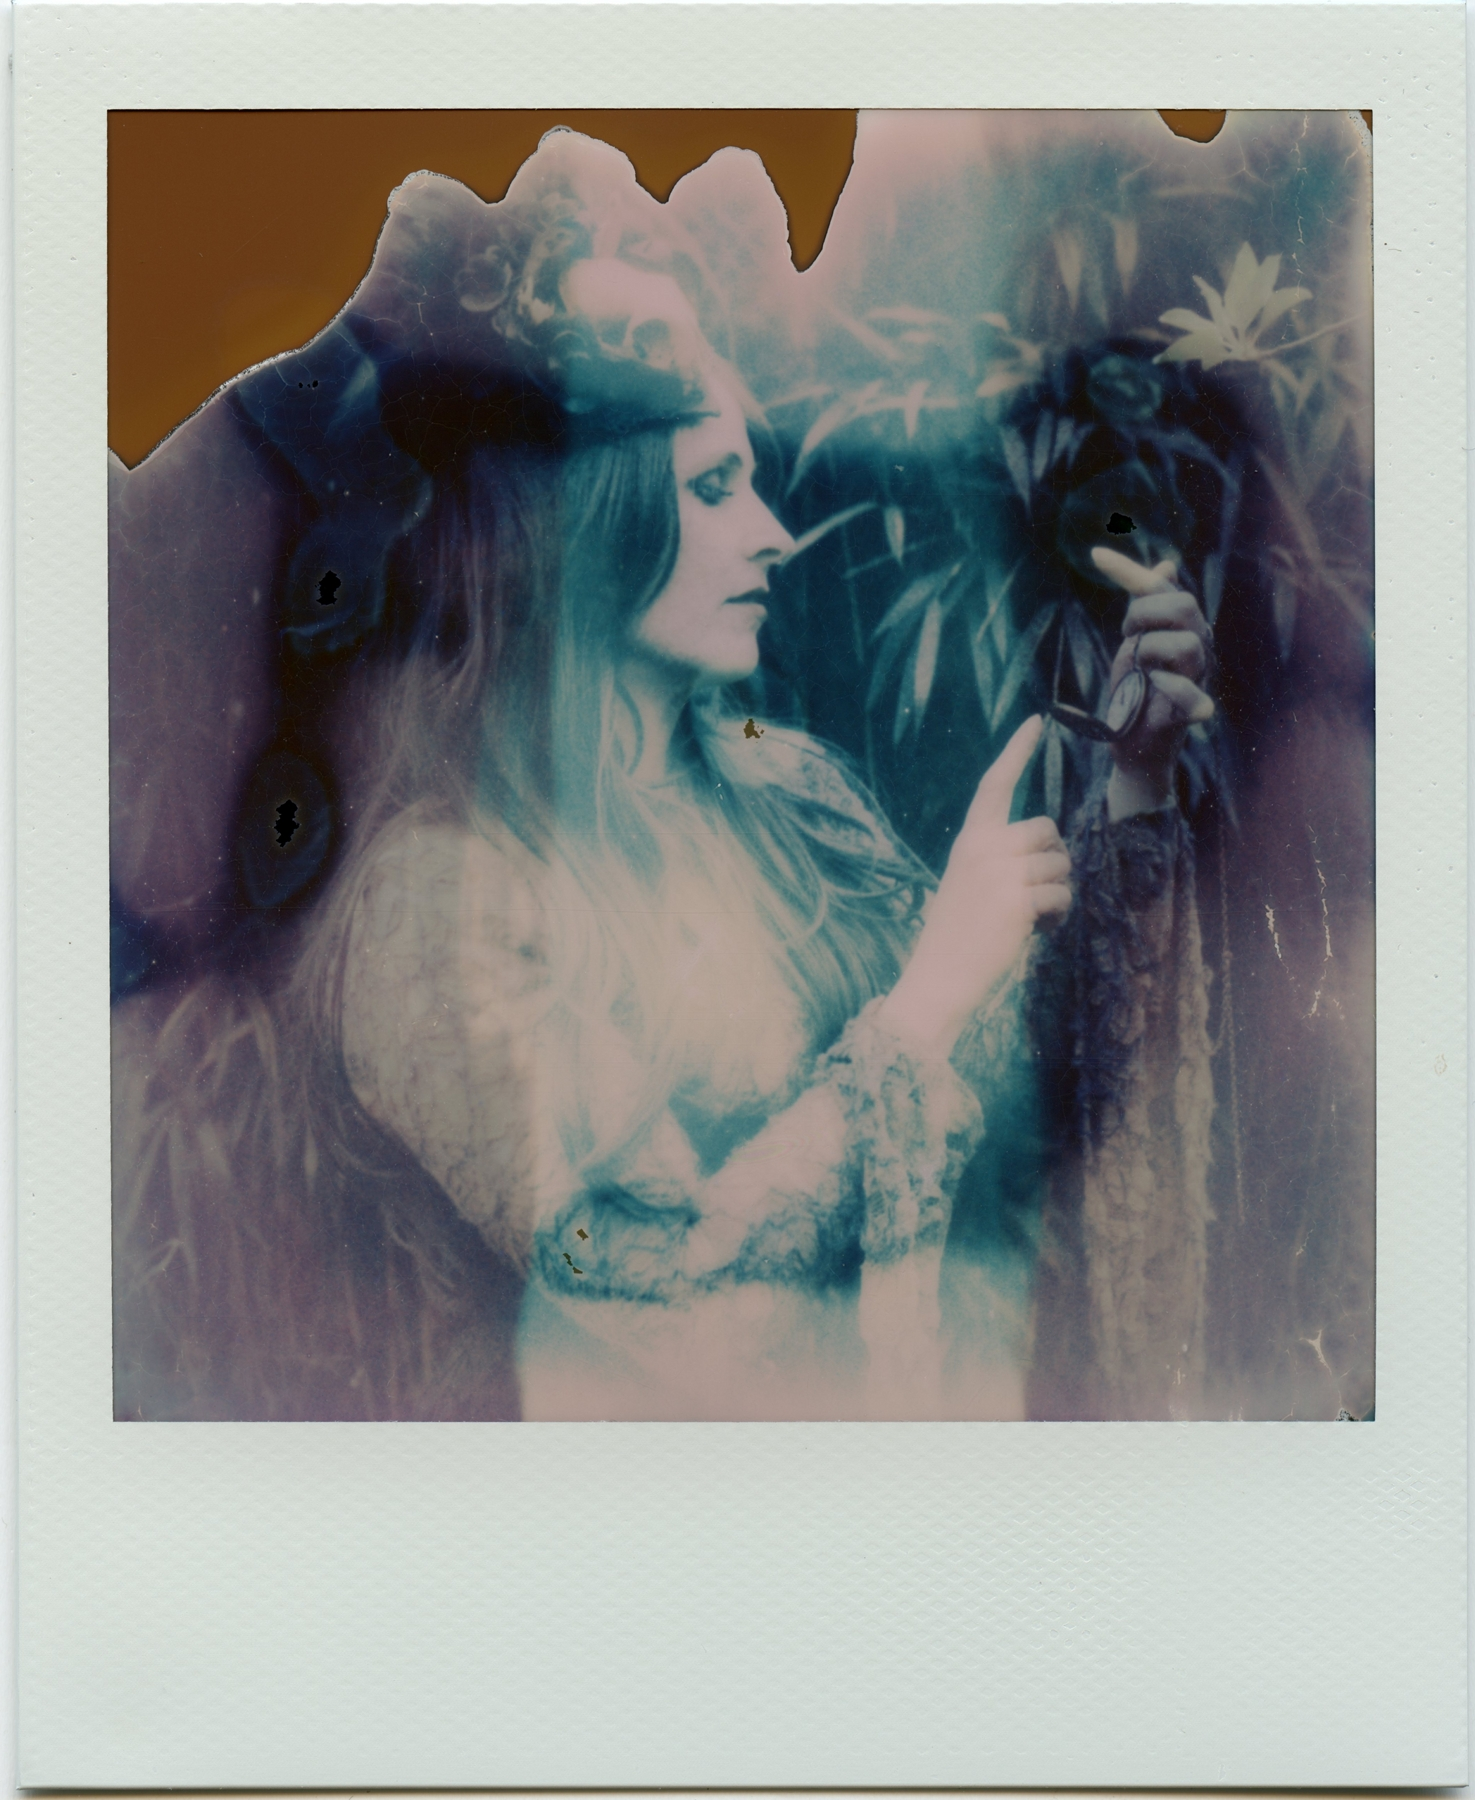 Lost In Time | Polaroid SLR680 | Impossible Project 600 Color Film | Julia Beyer